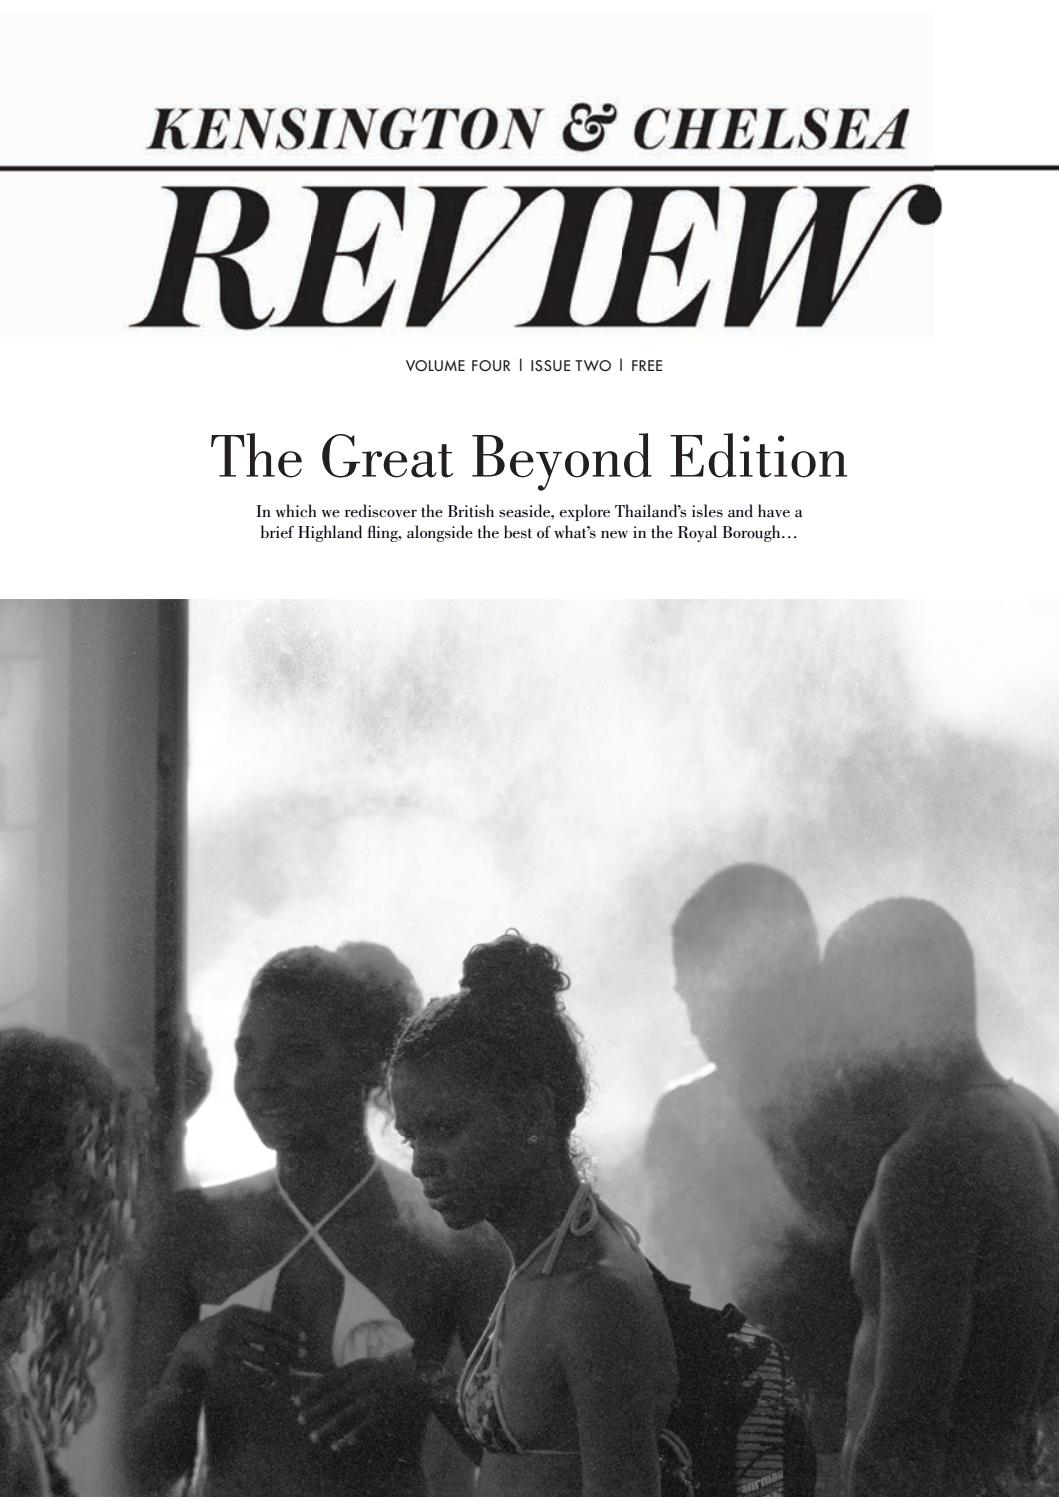 2d09ffd06b0 The Great Beyond Edition by Kensington and Chelsea Review - issuu